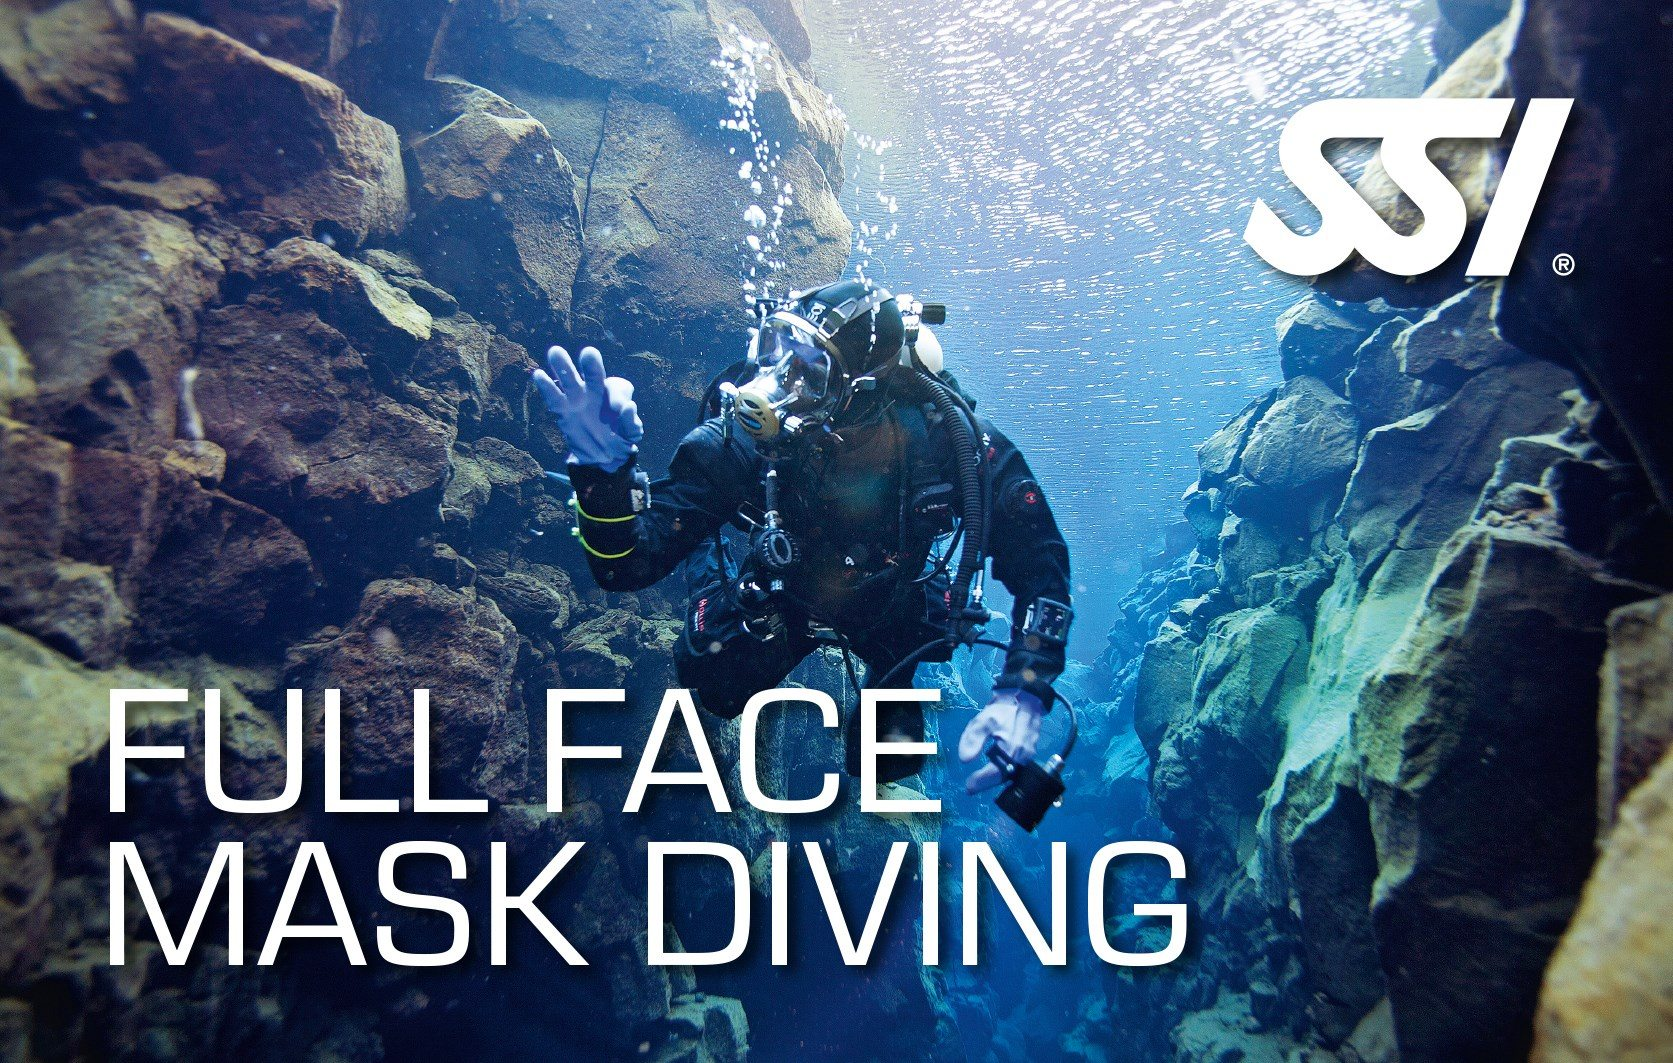 SSI Full Faced Mask Diving | SSI Full Faced Mask Diving | Full Faced Mask Diving | Diving Course